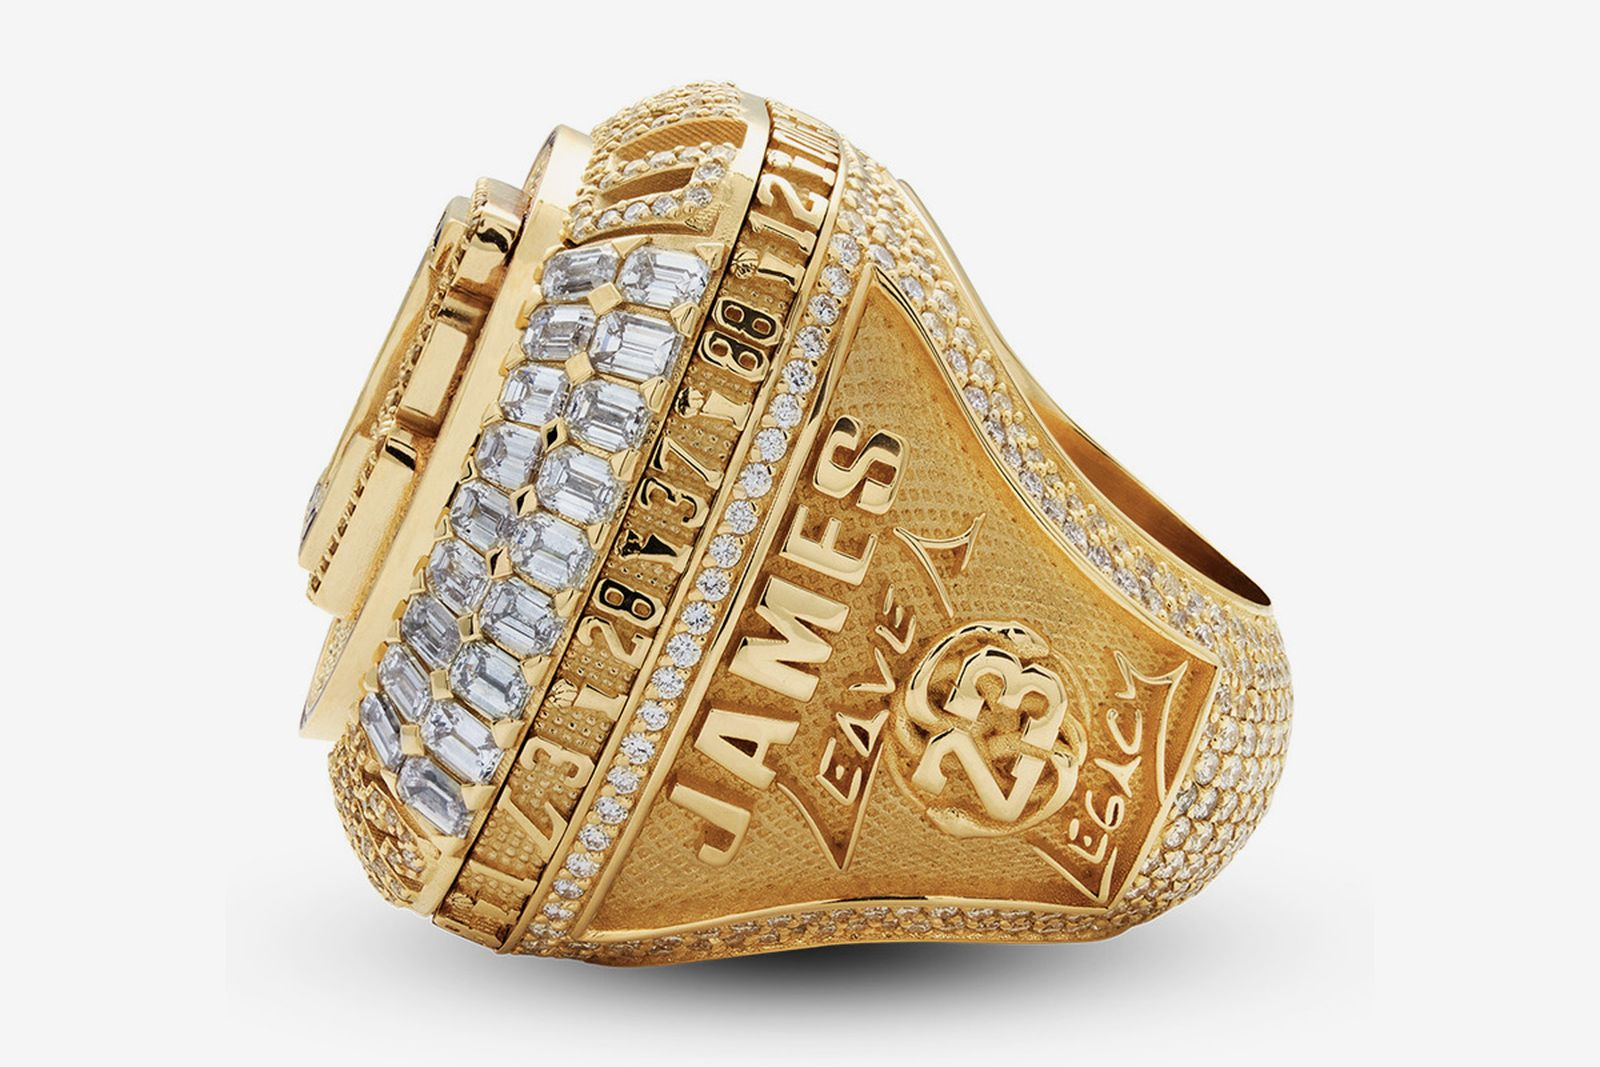 los-angeles-lakers-championship-ring-02